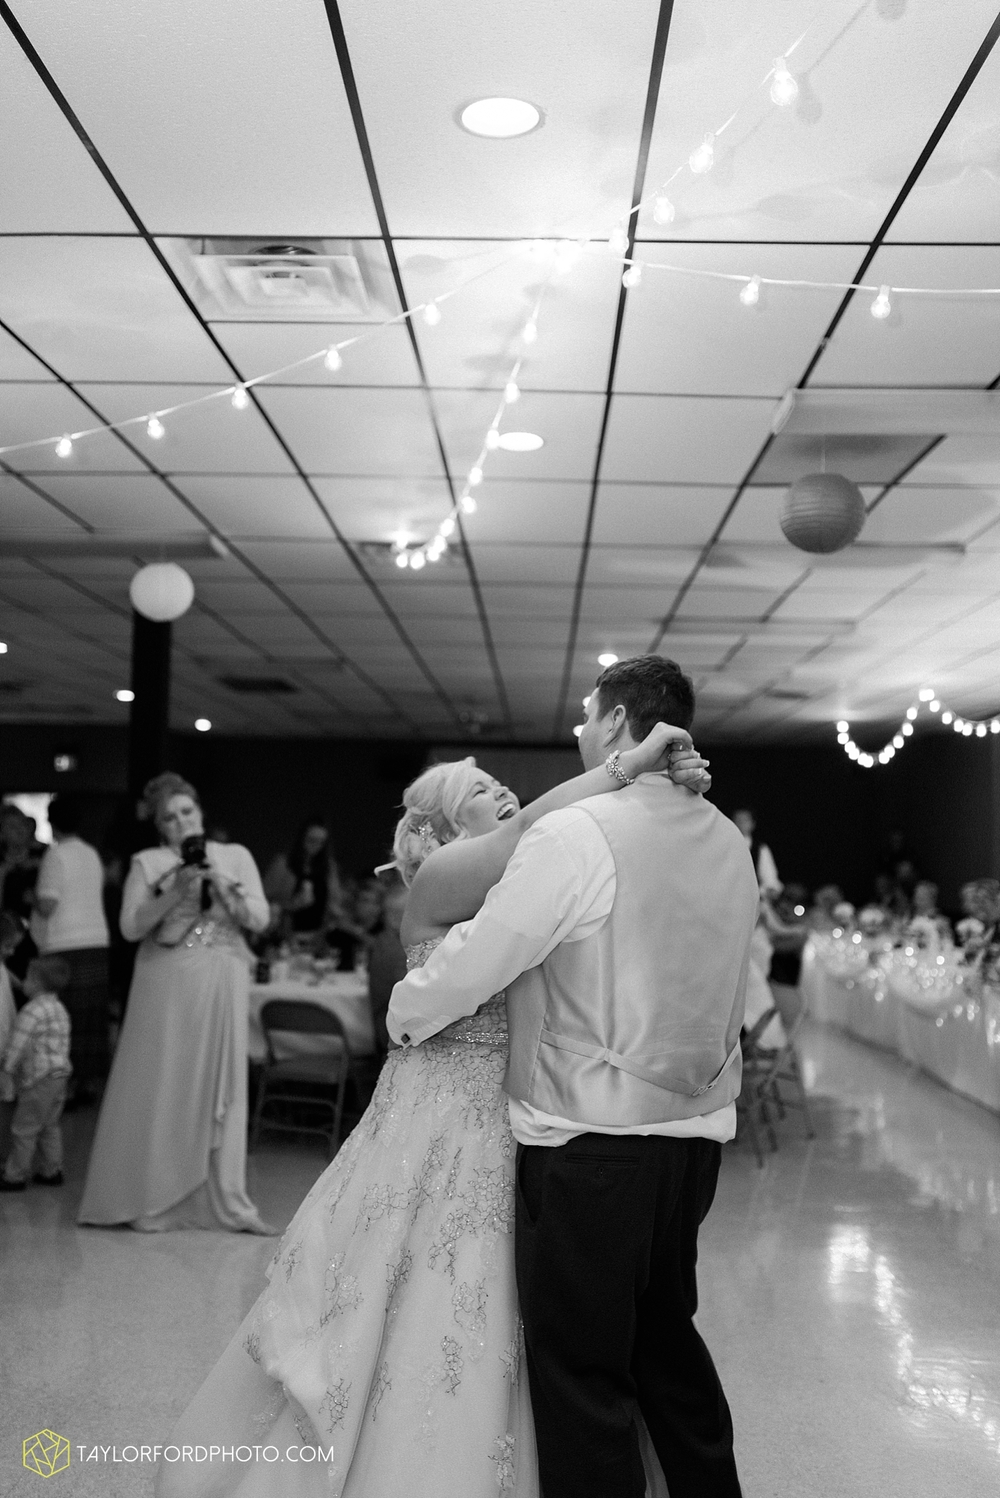 van_wert_ohio_wedding_photographer_taylor_ford_1305.jpg